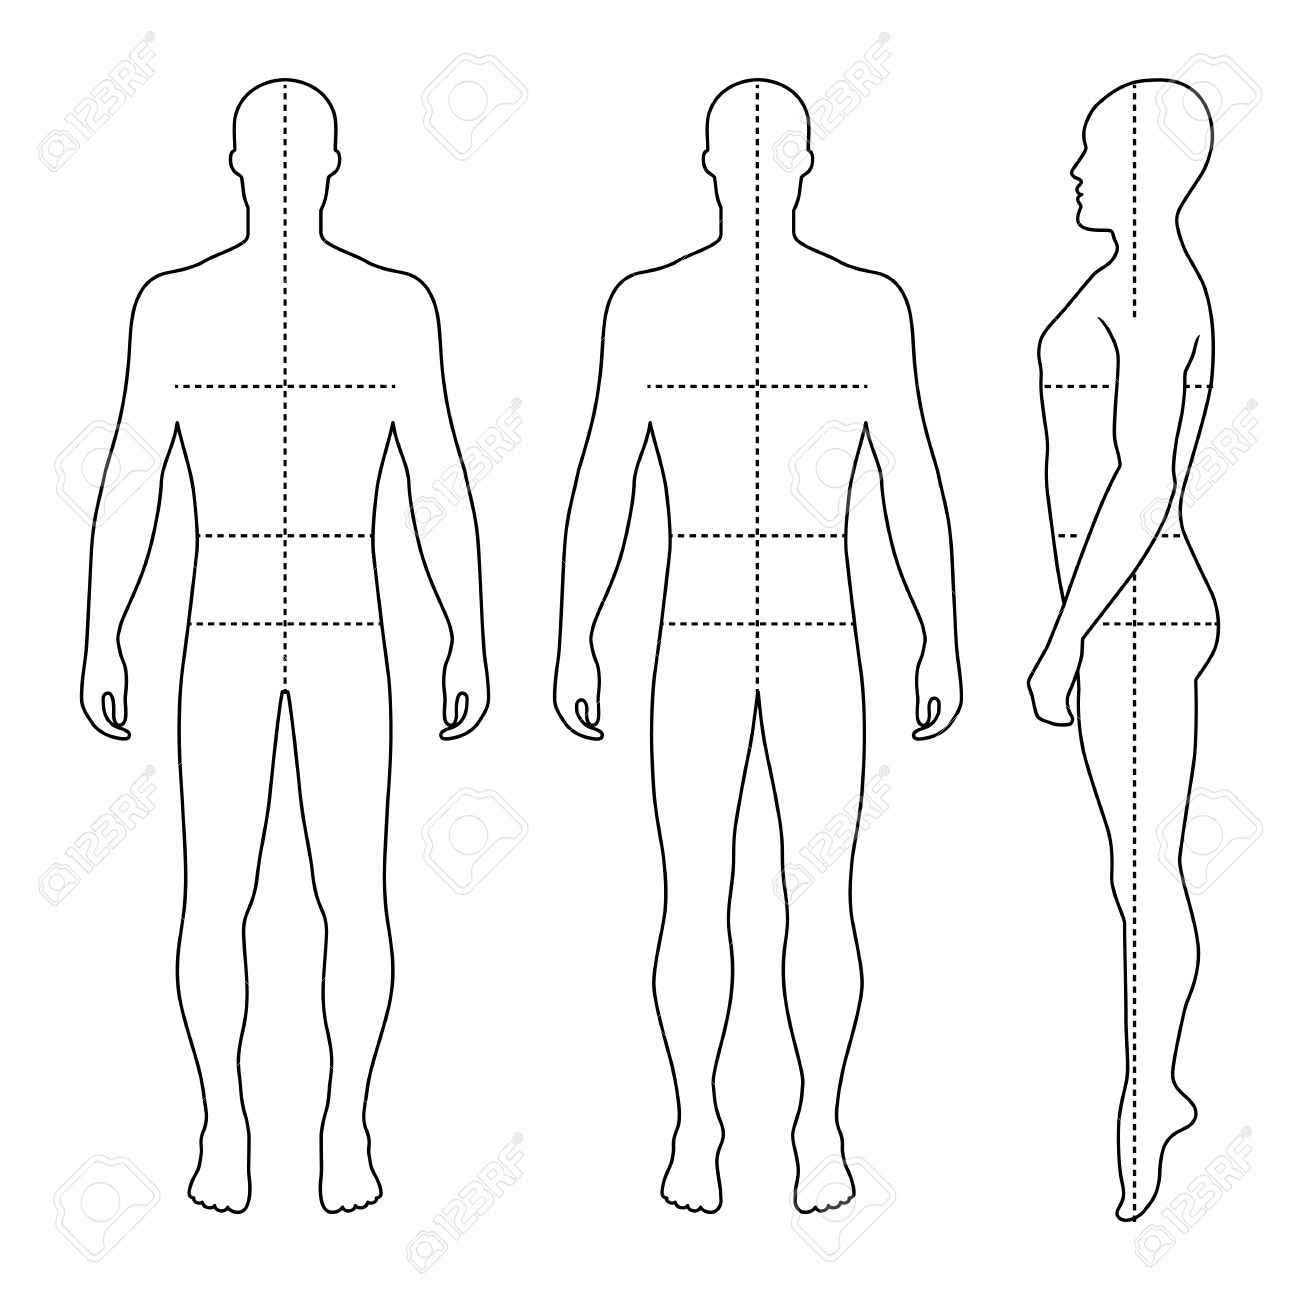 Body Template Drawing at GetDrawings.com | Free for personal use ...